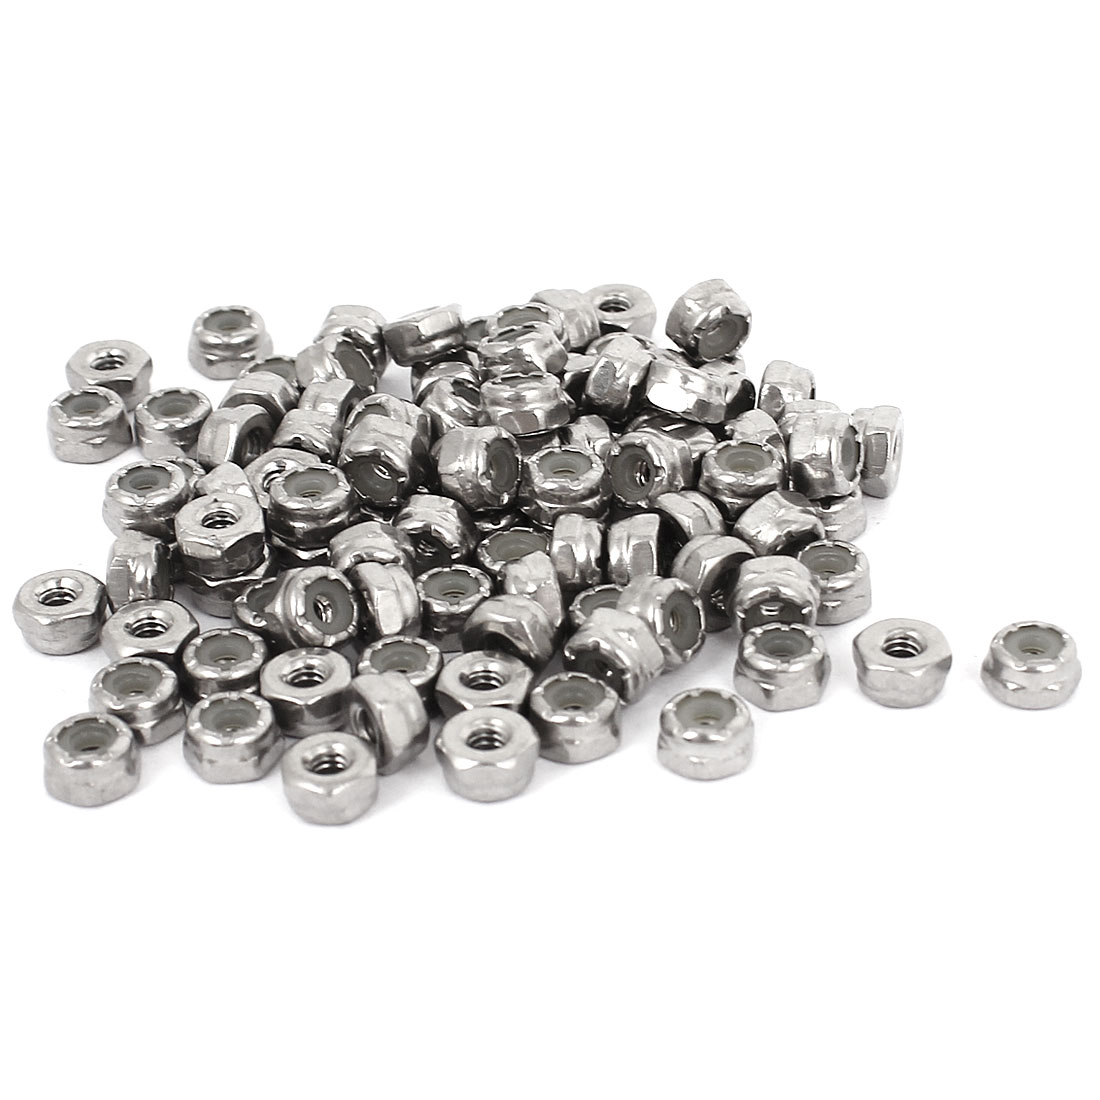 100pcs 304 Stainless Steel Nylock Self-Locking Nylon Insert Hex Lock Nuts #4-40